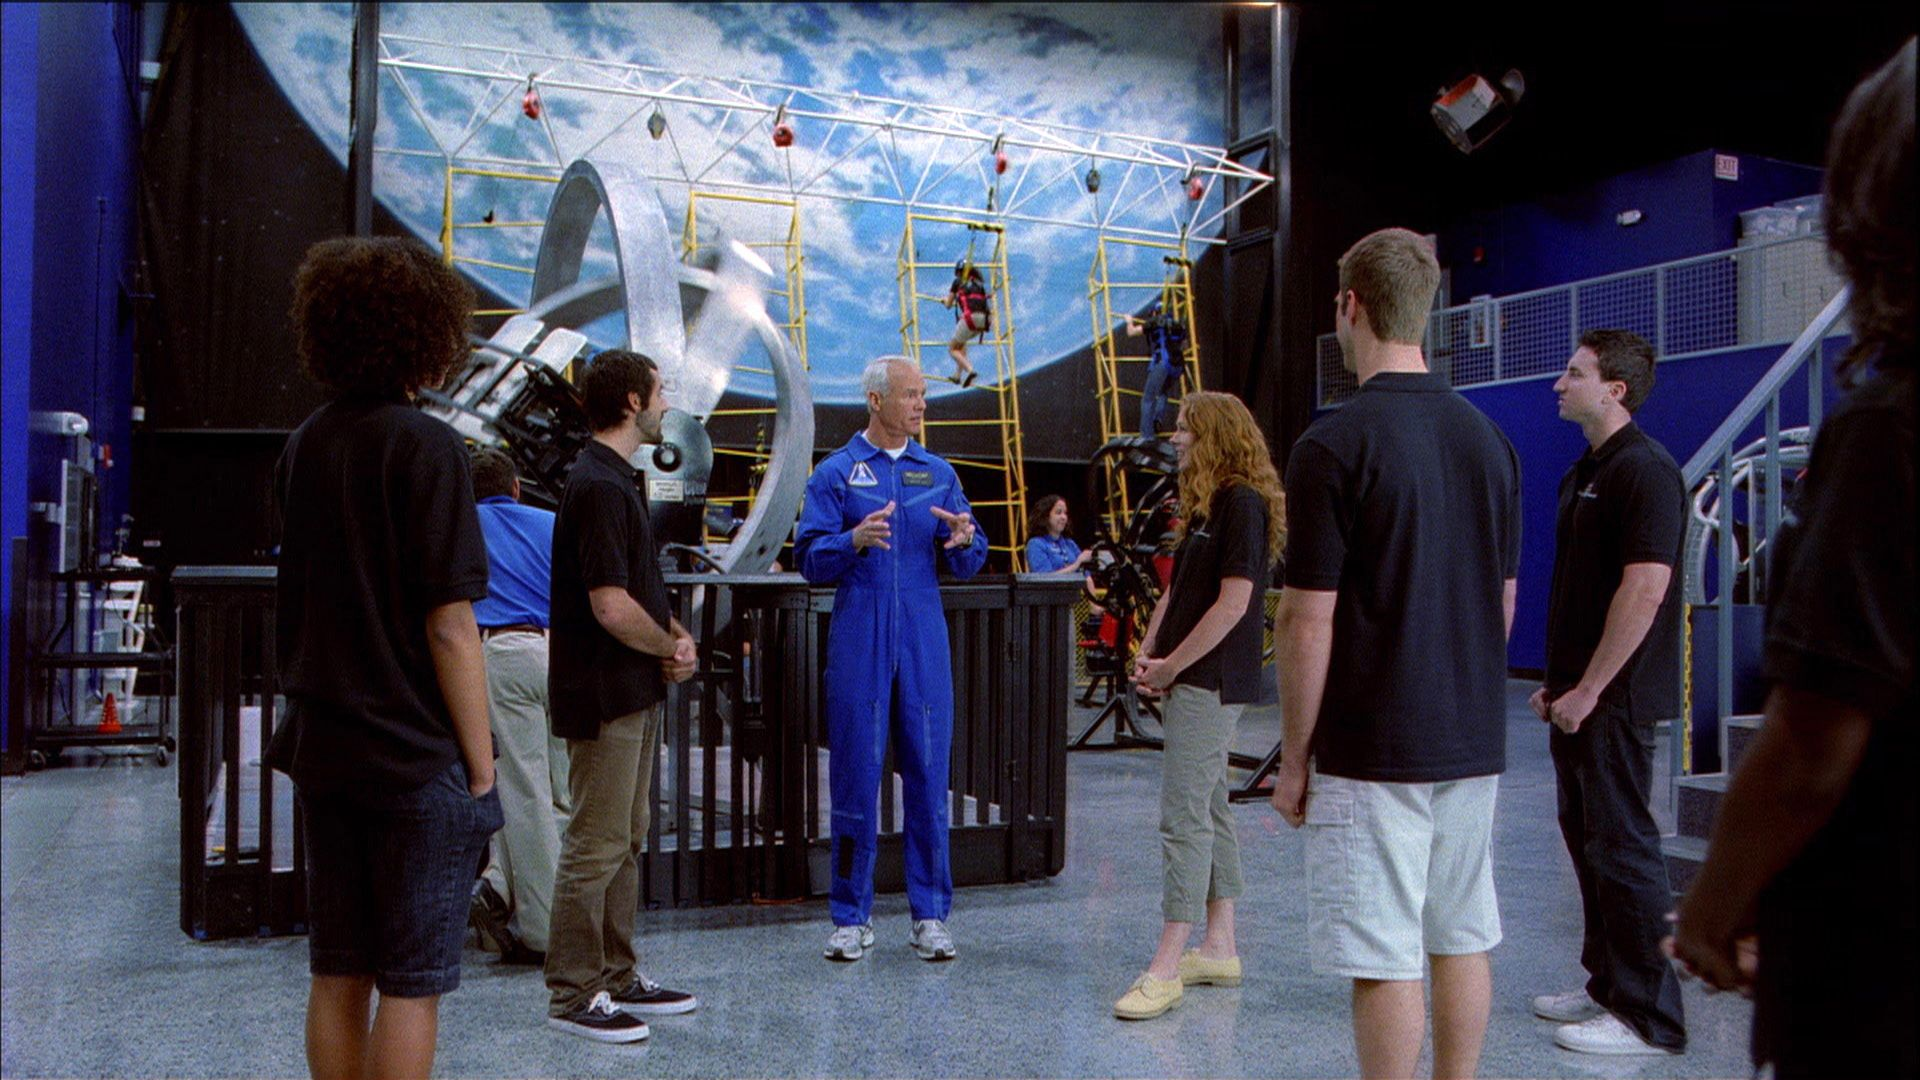 Astronaut training experience at The Kennedy Space Center